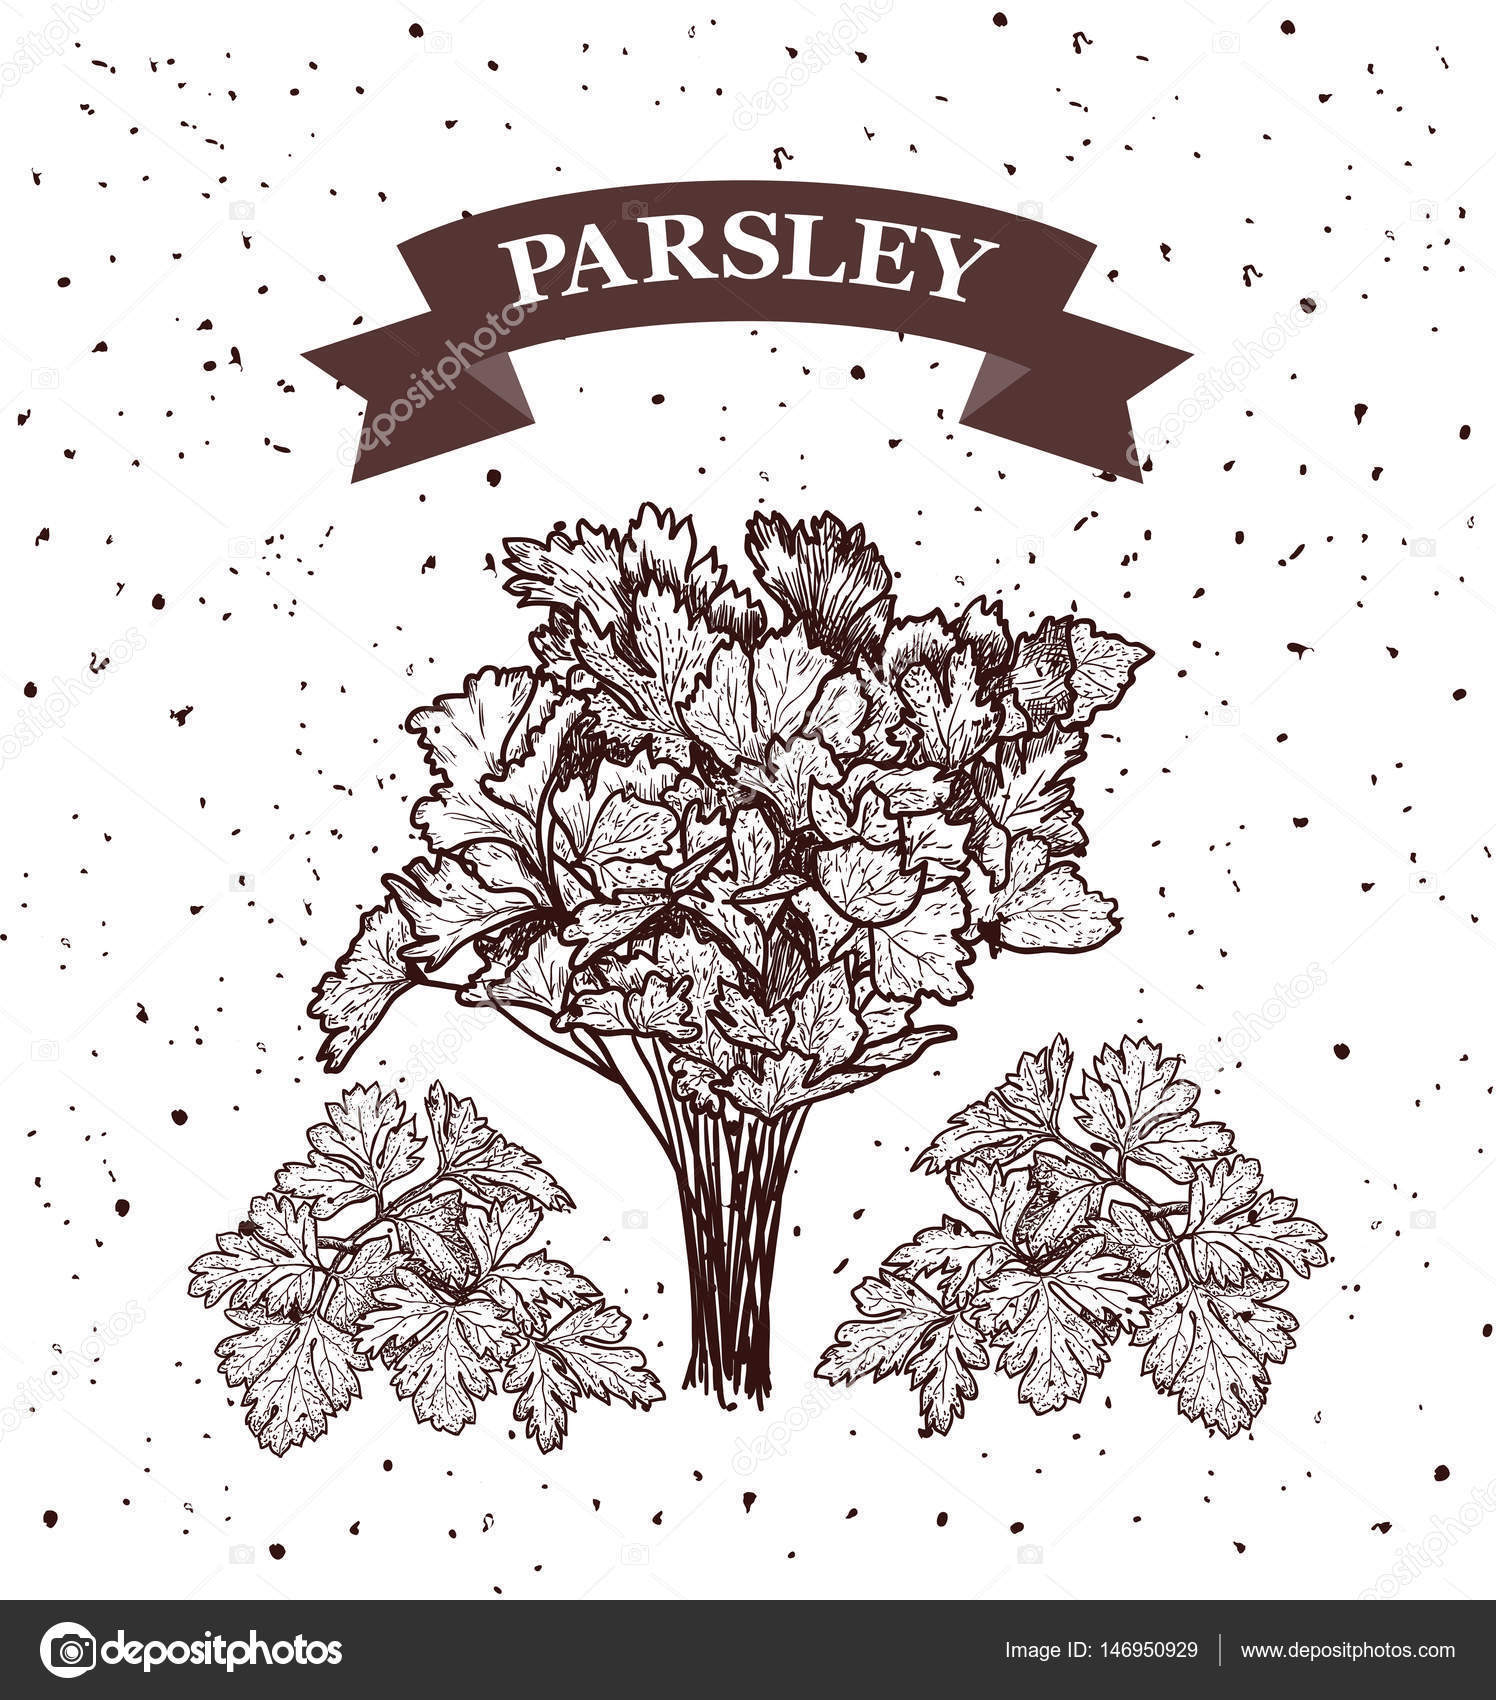 Parsley Illustration Parsley. Herb and spic...